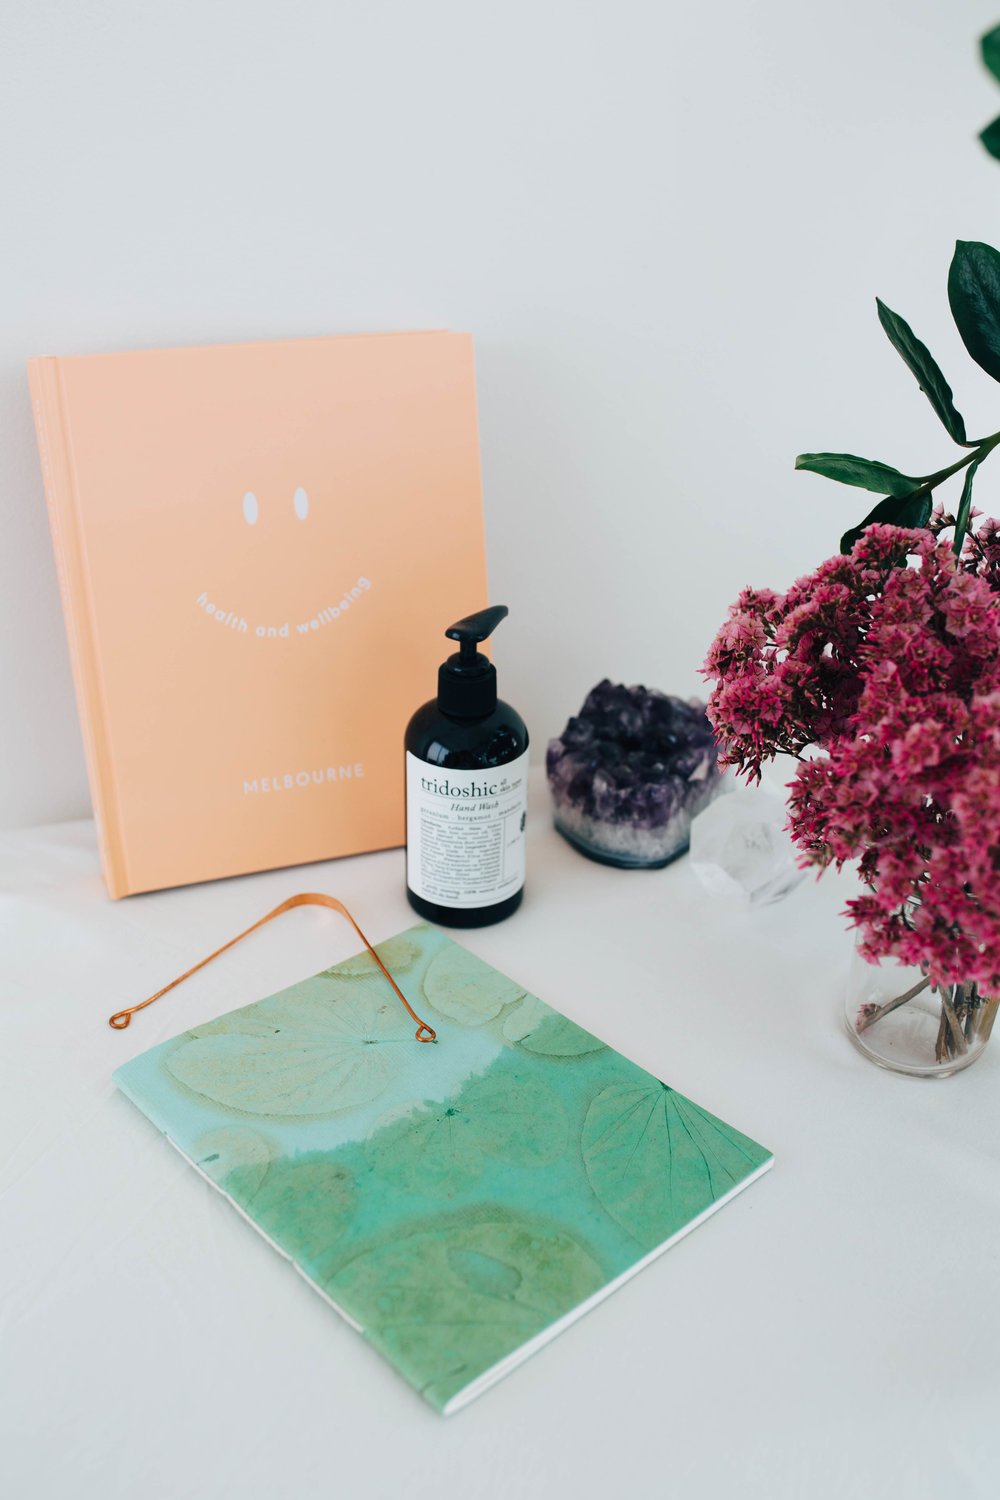 --- $75 gift ---- + 'Health and Wellbeing - Melbourne' book (with all the places and spaces in Melbourne to learn/eat/workout) + Rasasara tridoshic hand wash 240ml + Handmade paper notebook from Auroville, India + Copper Tongue Scraper